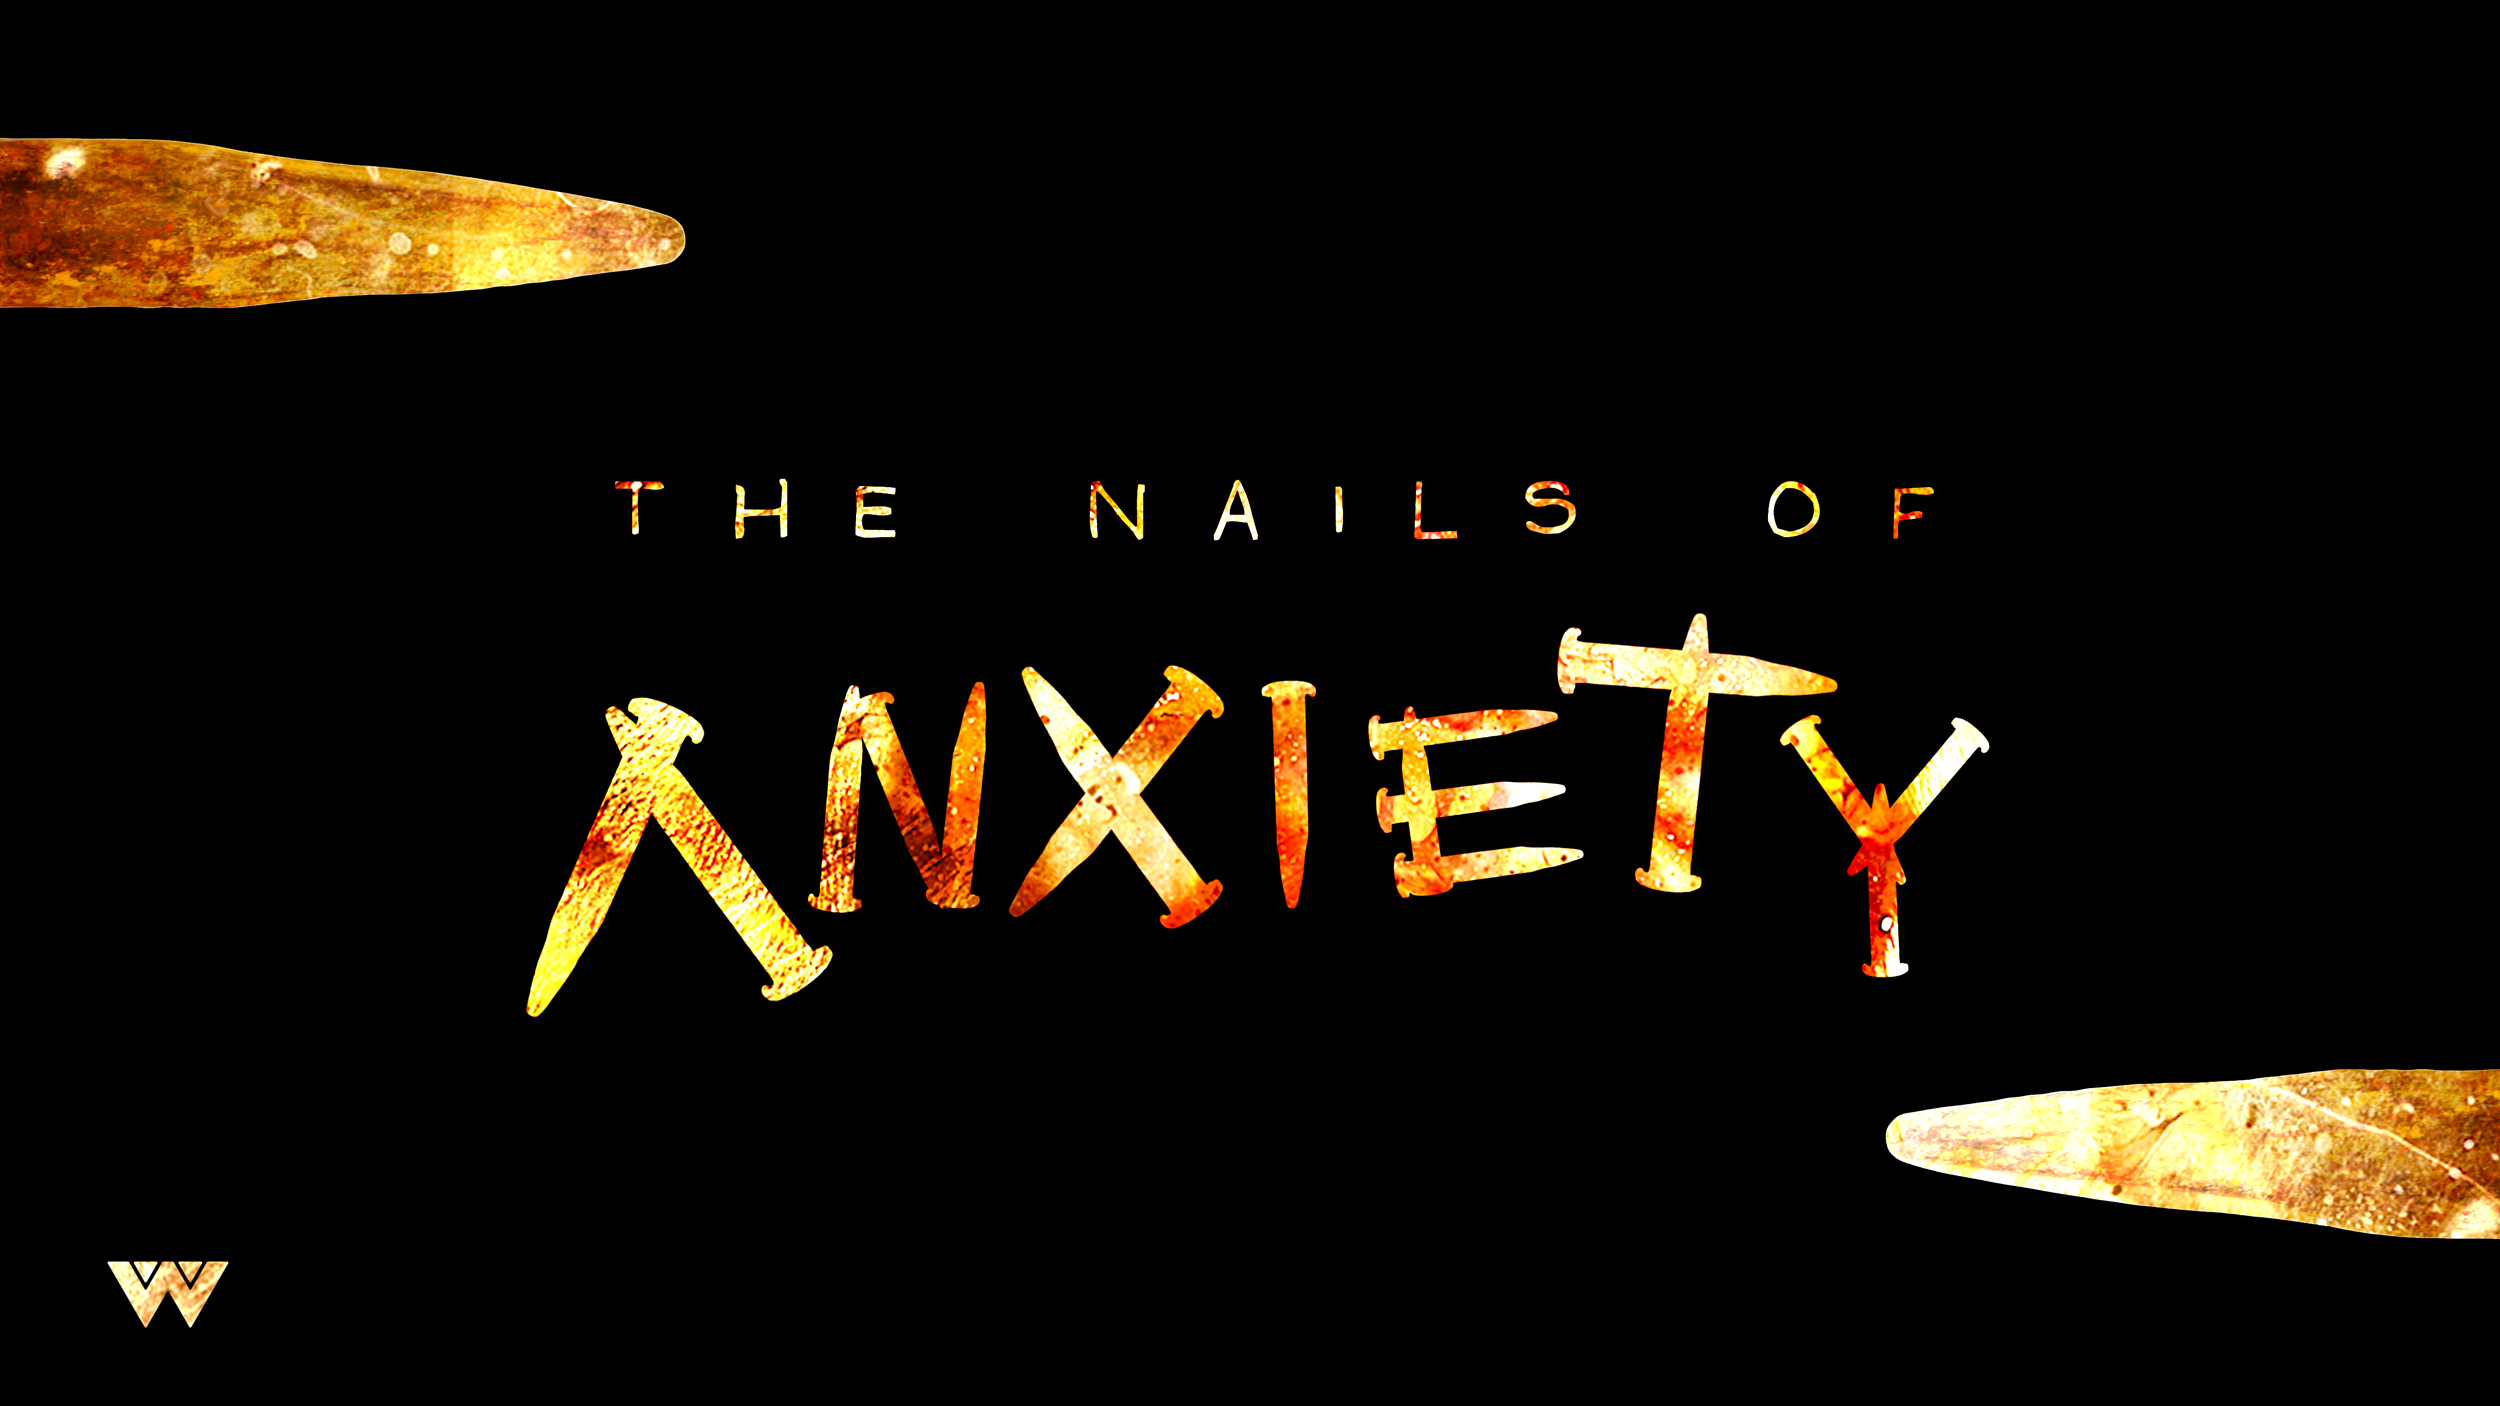 Overcome Anxiety! - We will be beginning our new message series,